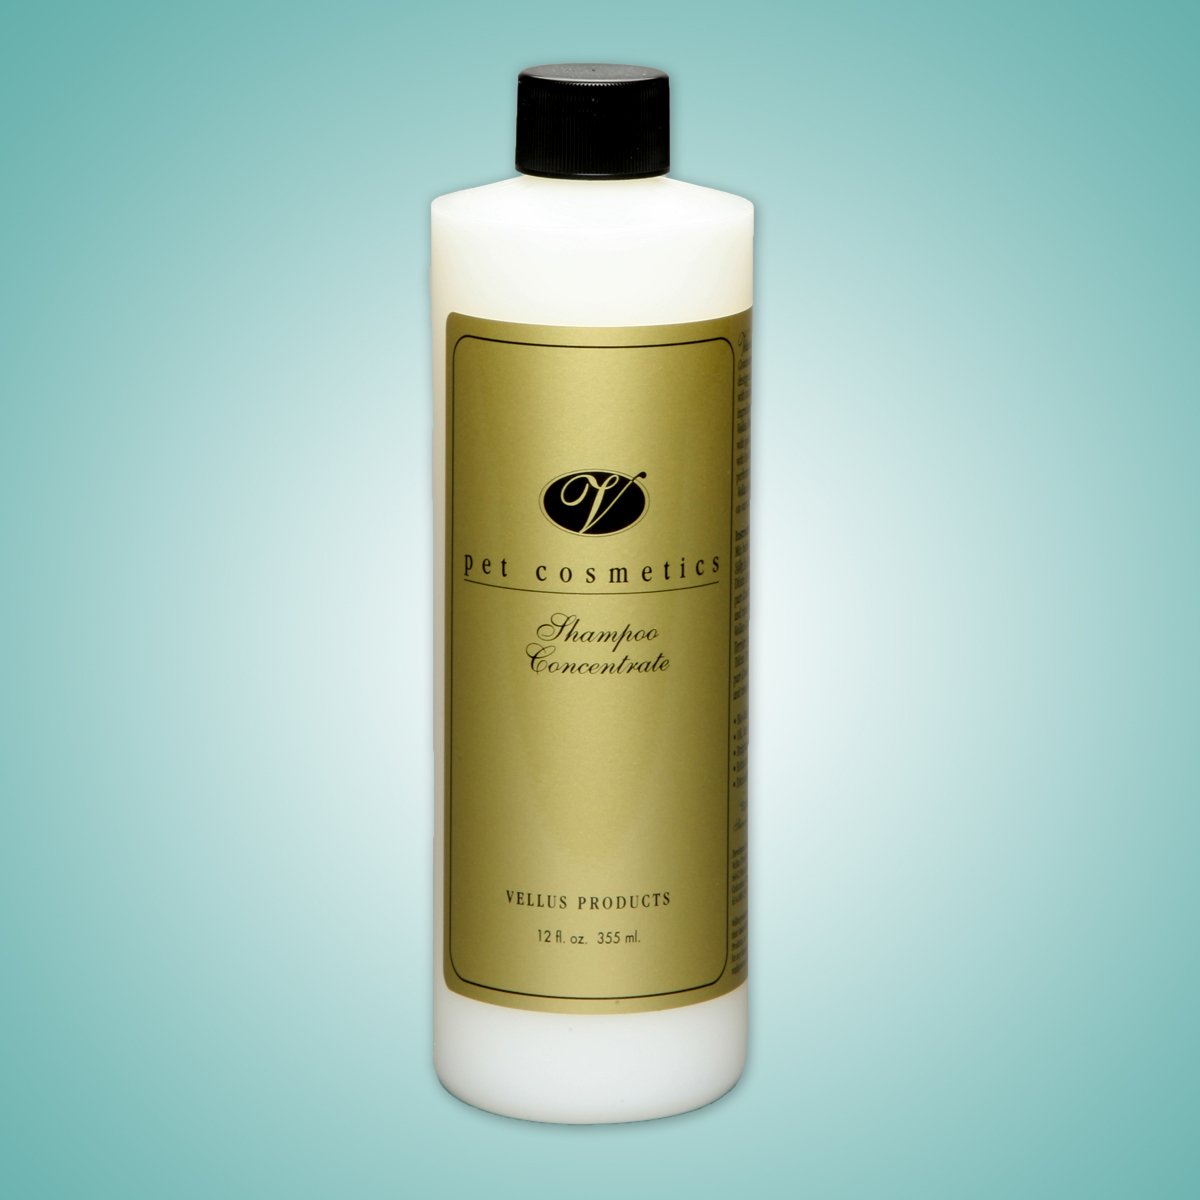 Vellus Shampoo Concentrate